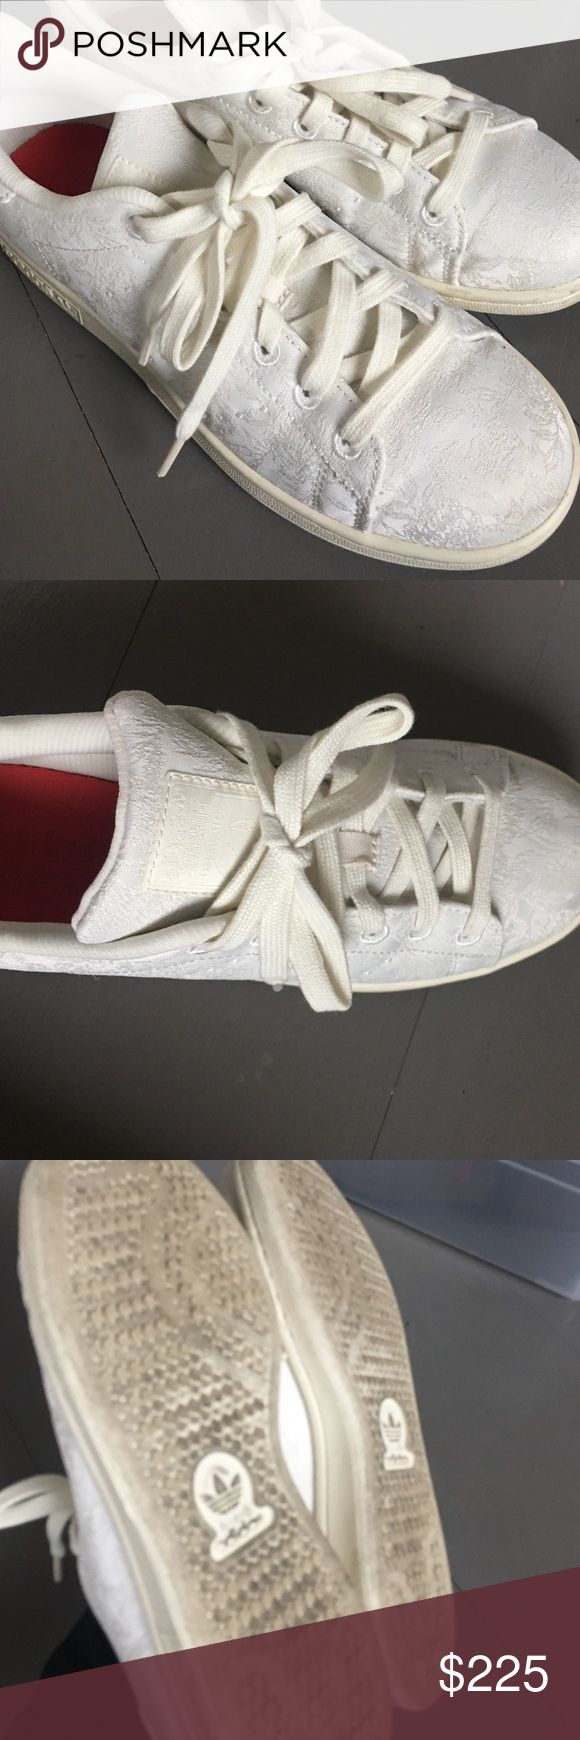 Special edition Adidas Superstar Ivory embroidered special edition from Sweden adidas superstar. Worn once so soles are dirty. Otherwise in perfect condition. Says size 5 US. UK 4.5. FR 37. Comes with red and extra ivory laces and shoe bag Adidas Shoes Sneakers